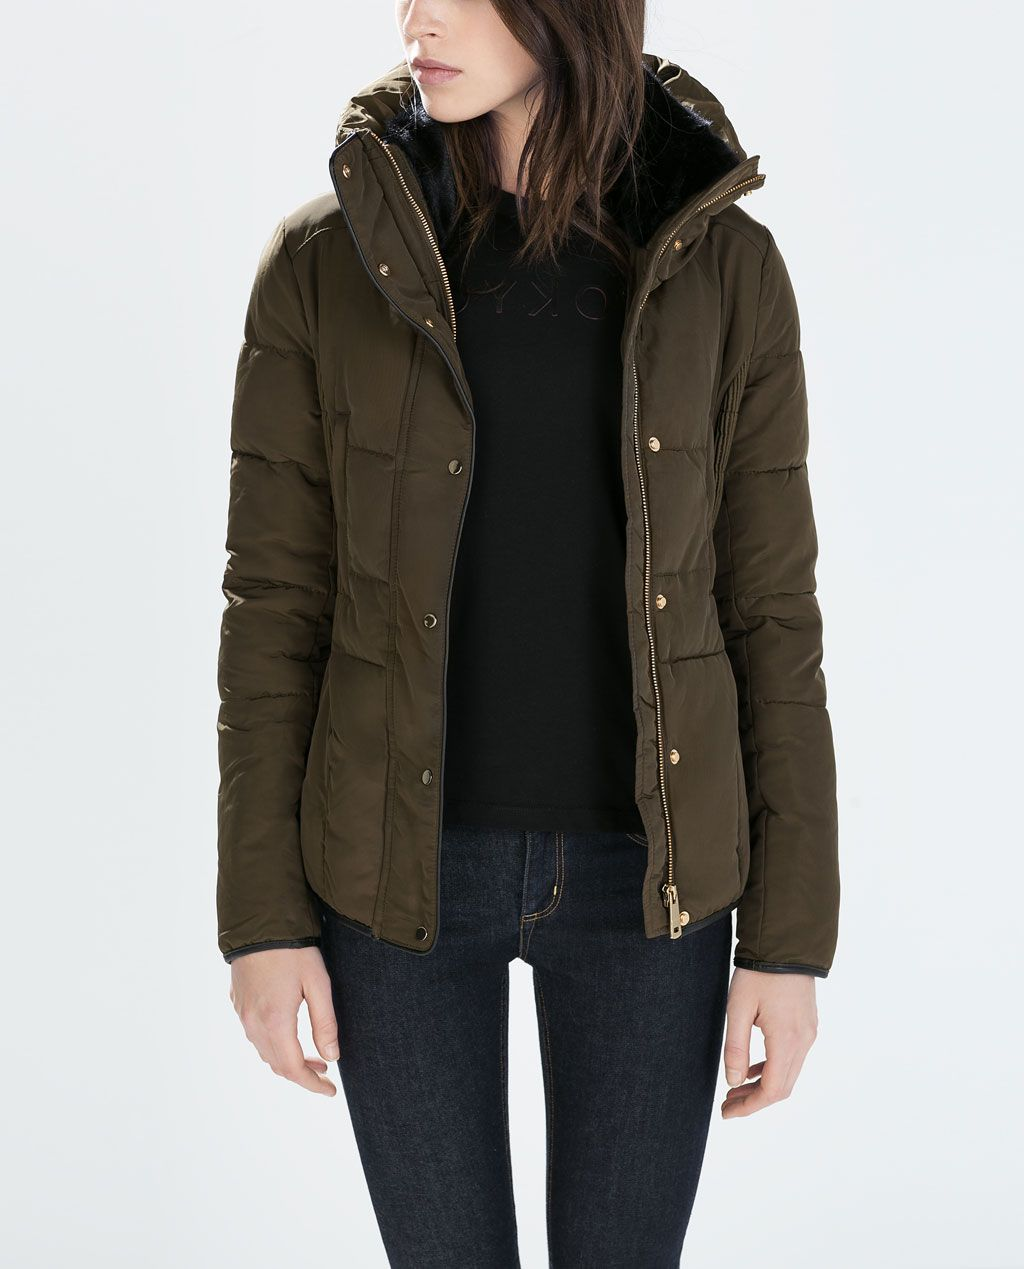 fotos oficiales 944c4 464f2 FITTED SHORT ANORAK-Quilted coat-Outerwear-WOMAN-SALE | ZARA ...